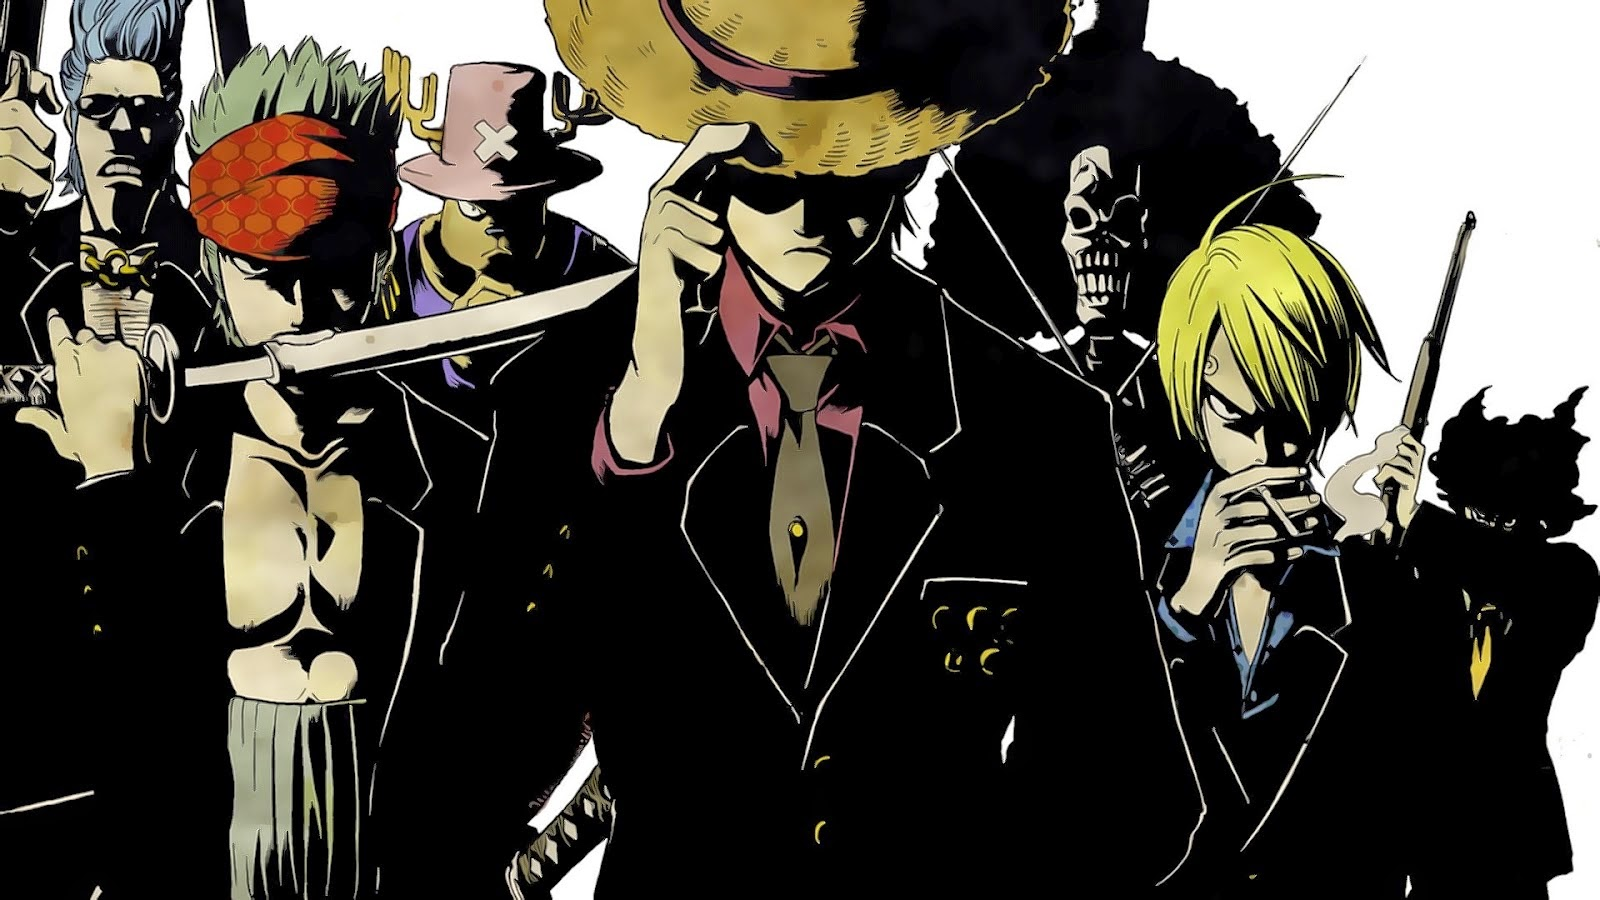 Free Anime One Piece Wallpapers 1280x1024 Right One Piece Wallpaper